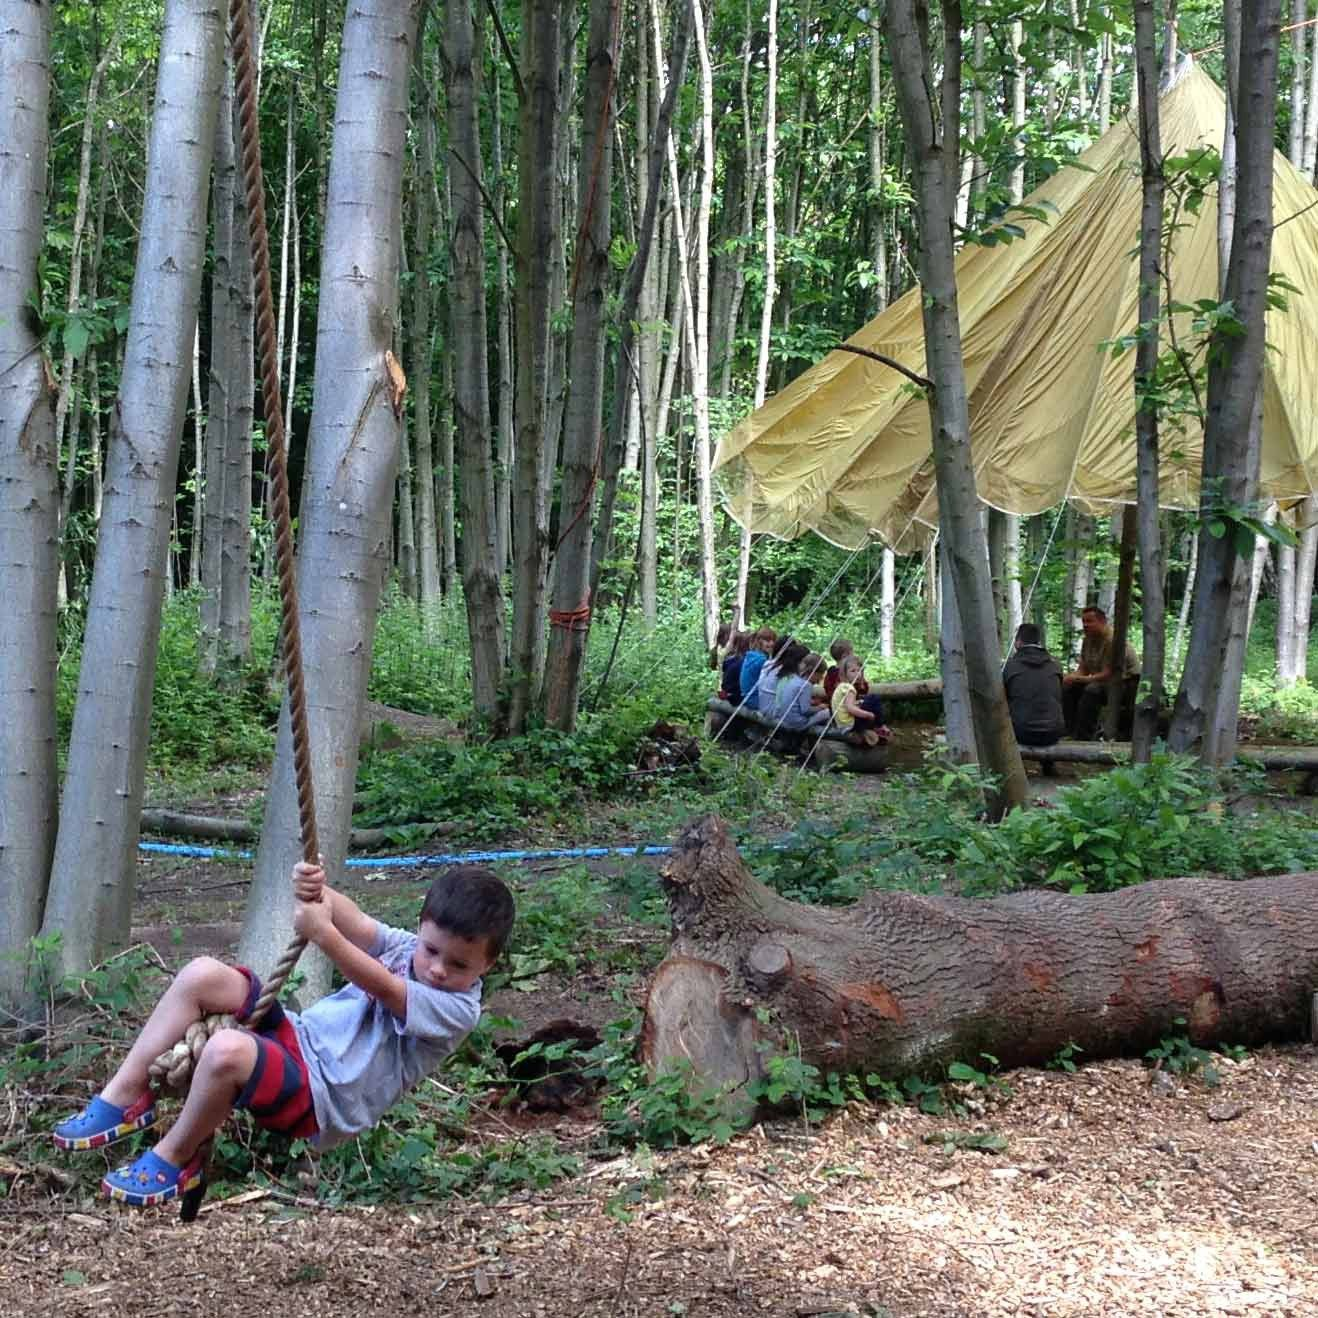 An immersive camping experience in the beautiful natural setting of an ancient woodland.